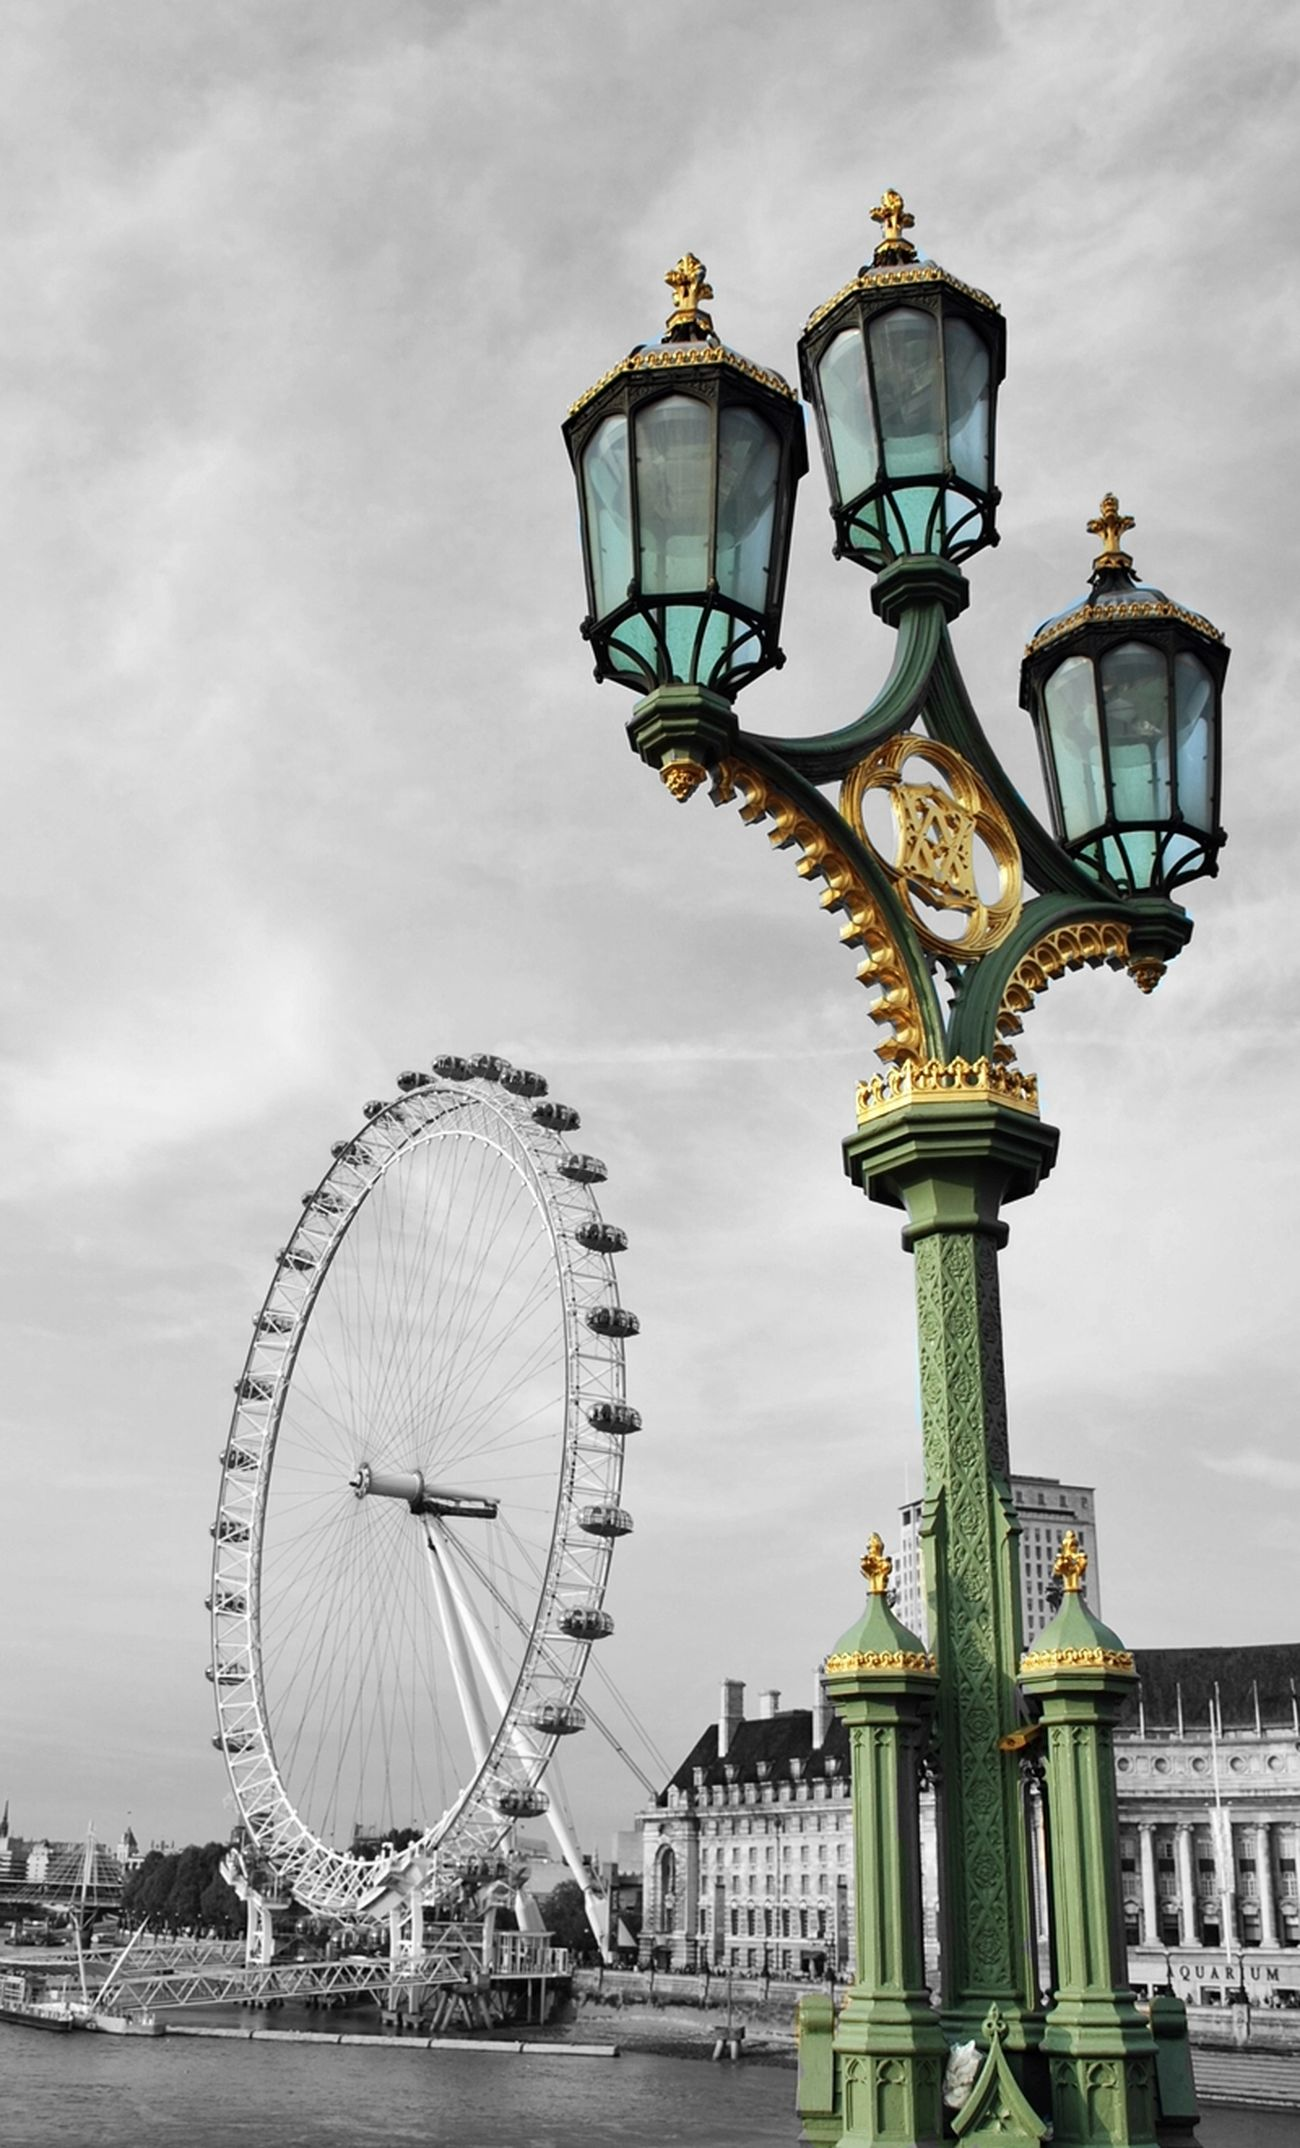 Architecture Black And White And Color Built Structure England🇬🇧 Ferris Wheel London London Eye LONDON❤ Outdoors Sky Travel Destinations United Kingdom Westminster Bridge